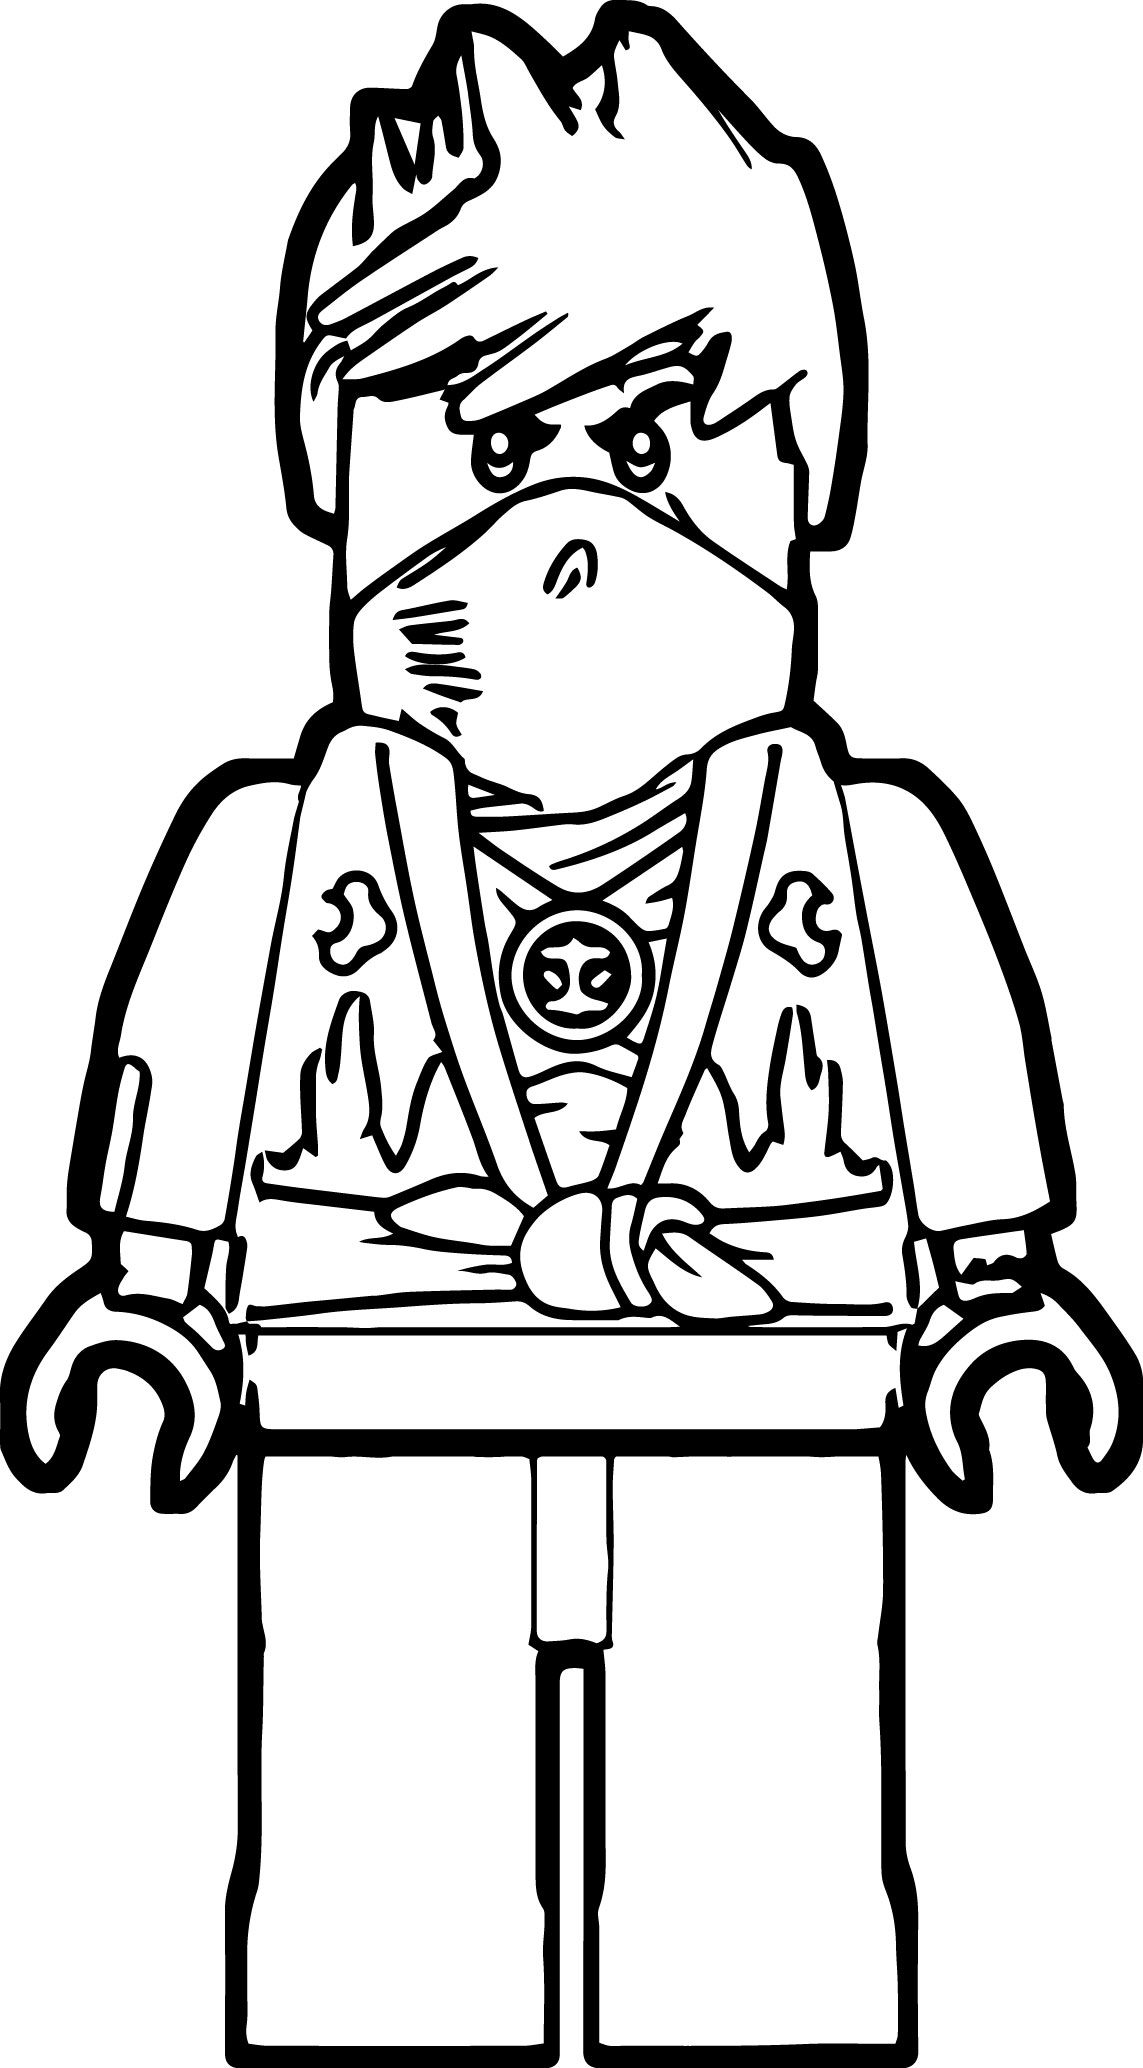 lego coloring sheets create your own lego coloring pages for kids coloring lego sheets